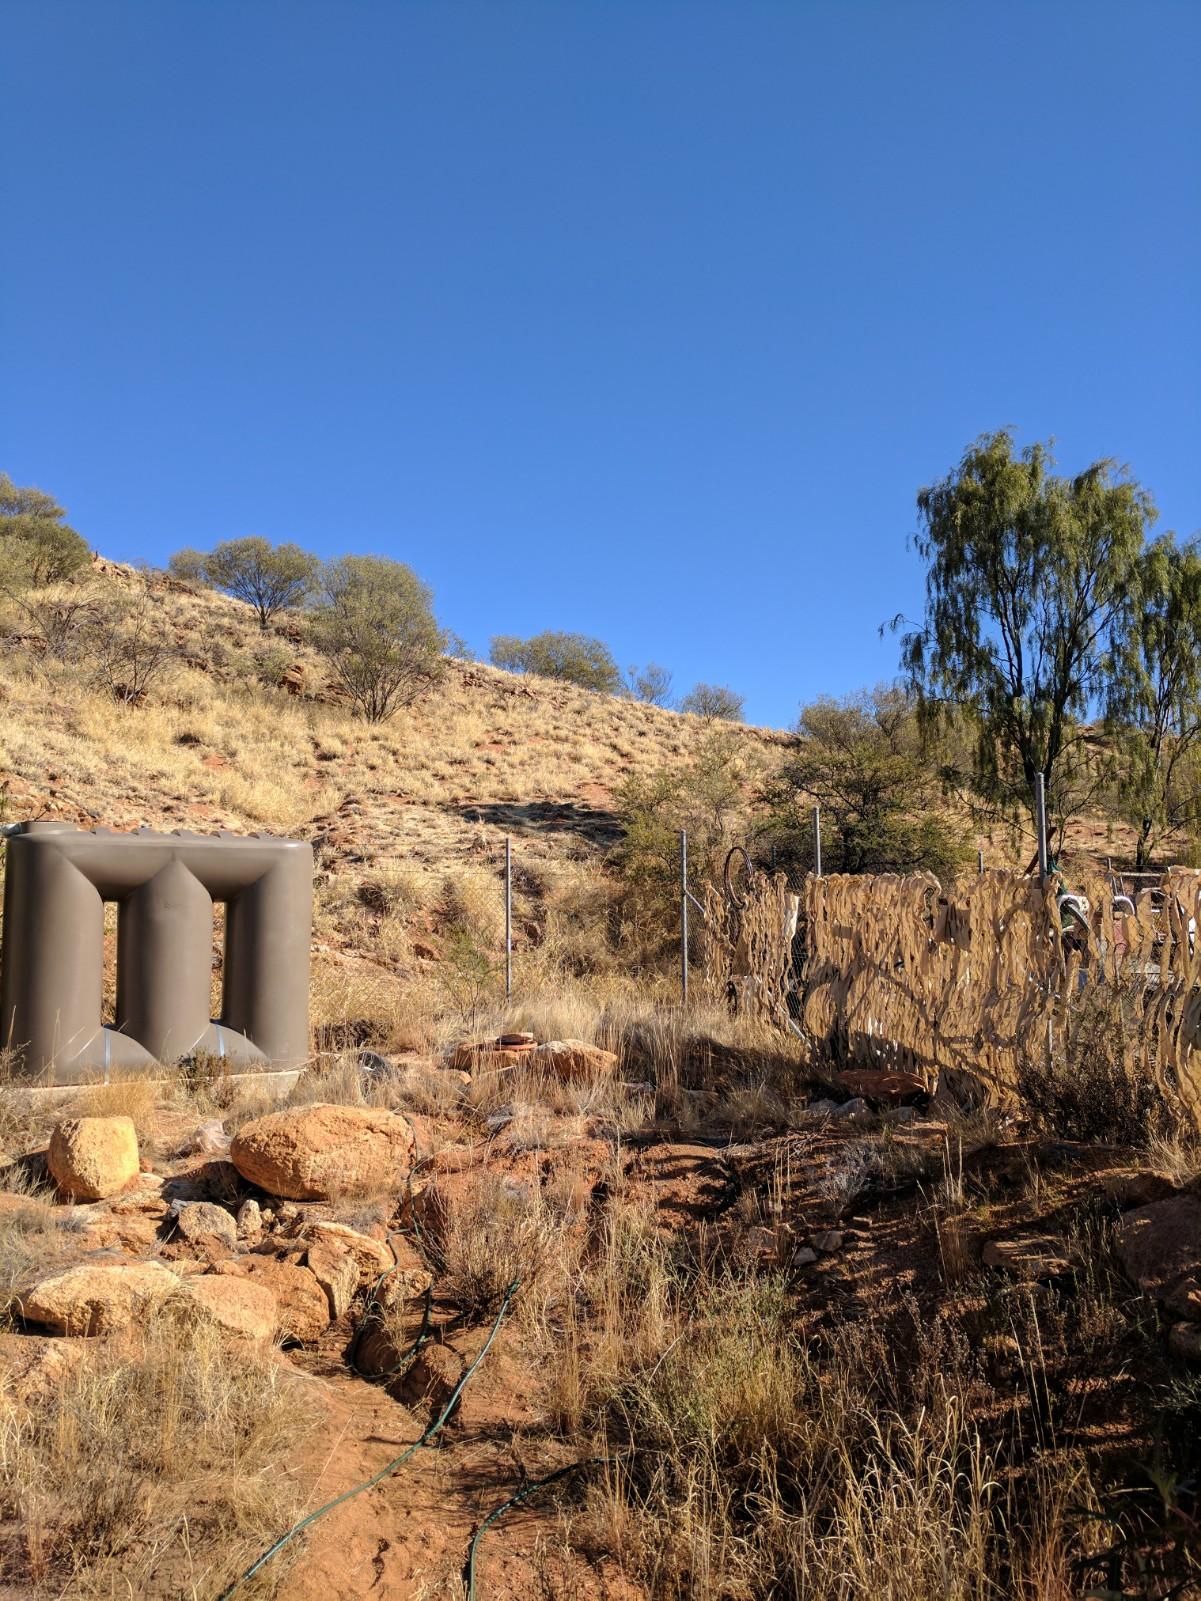 Storm water storage and retention pits for water run off